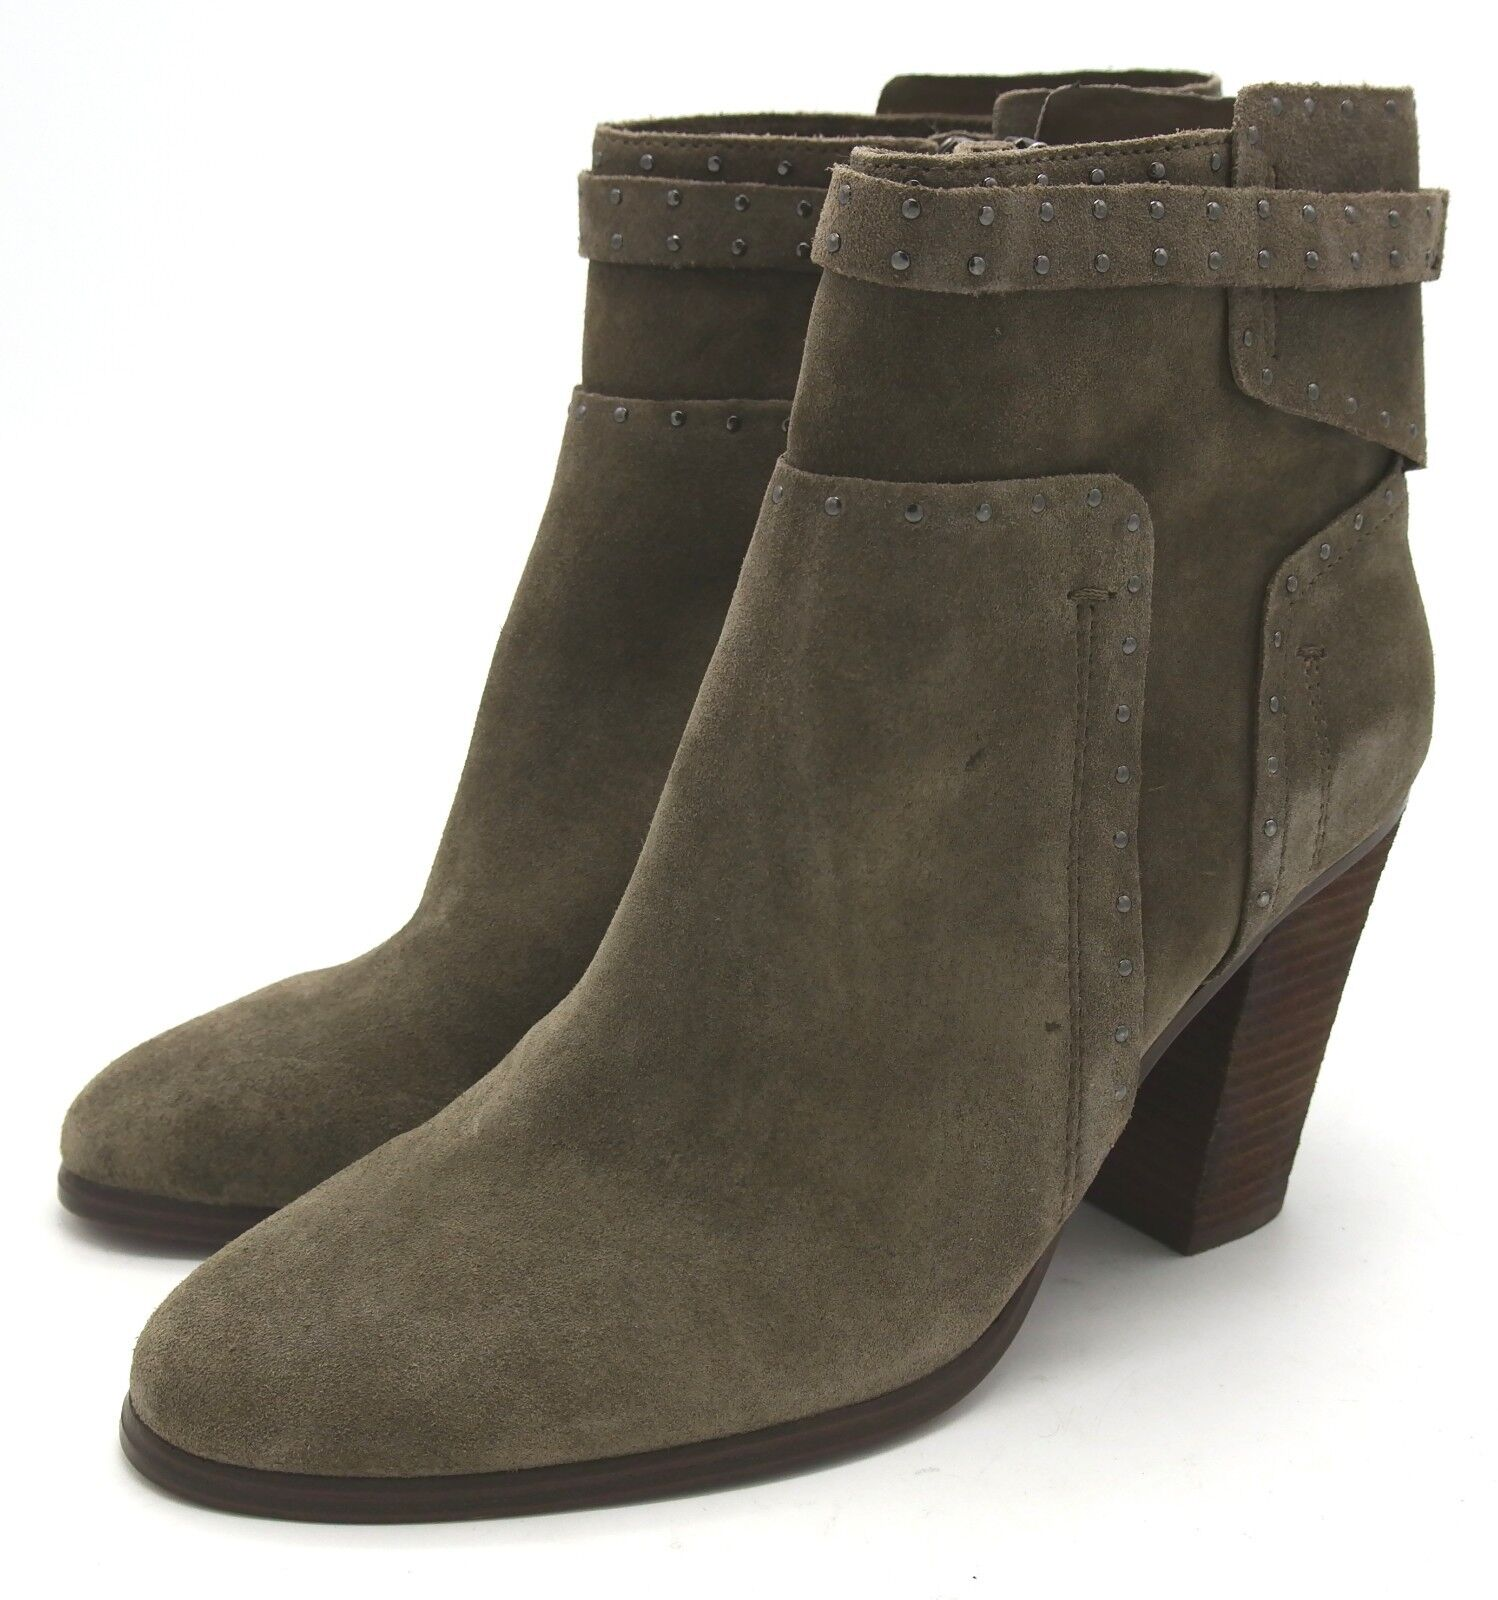 J6463 New Womens Vince Camuto Faythes Velvet Dream Suede Leather Bootie 8 M